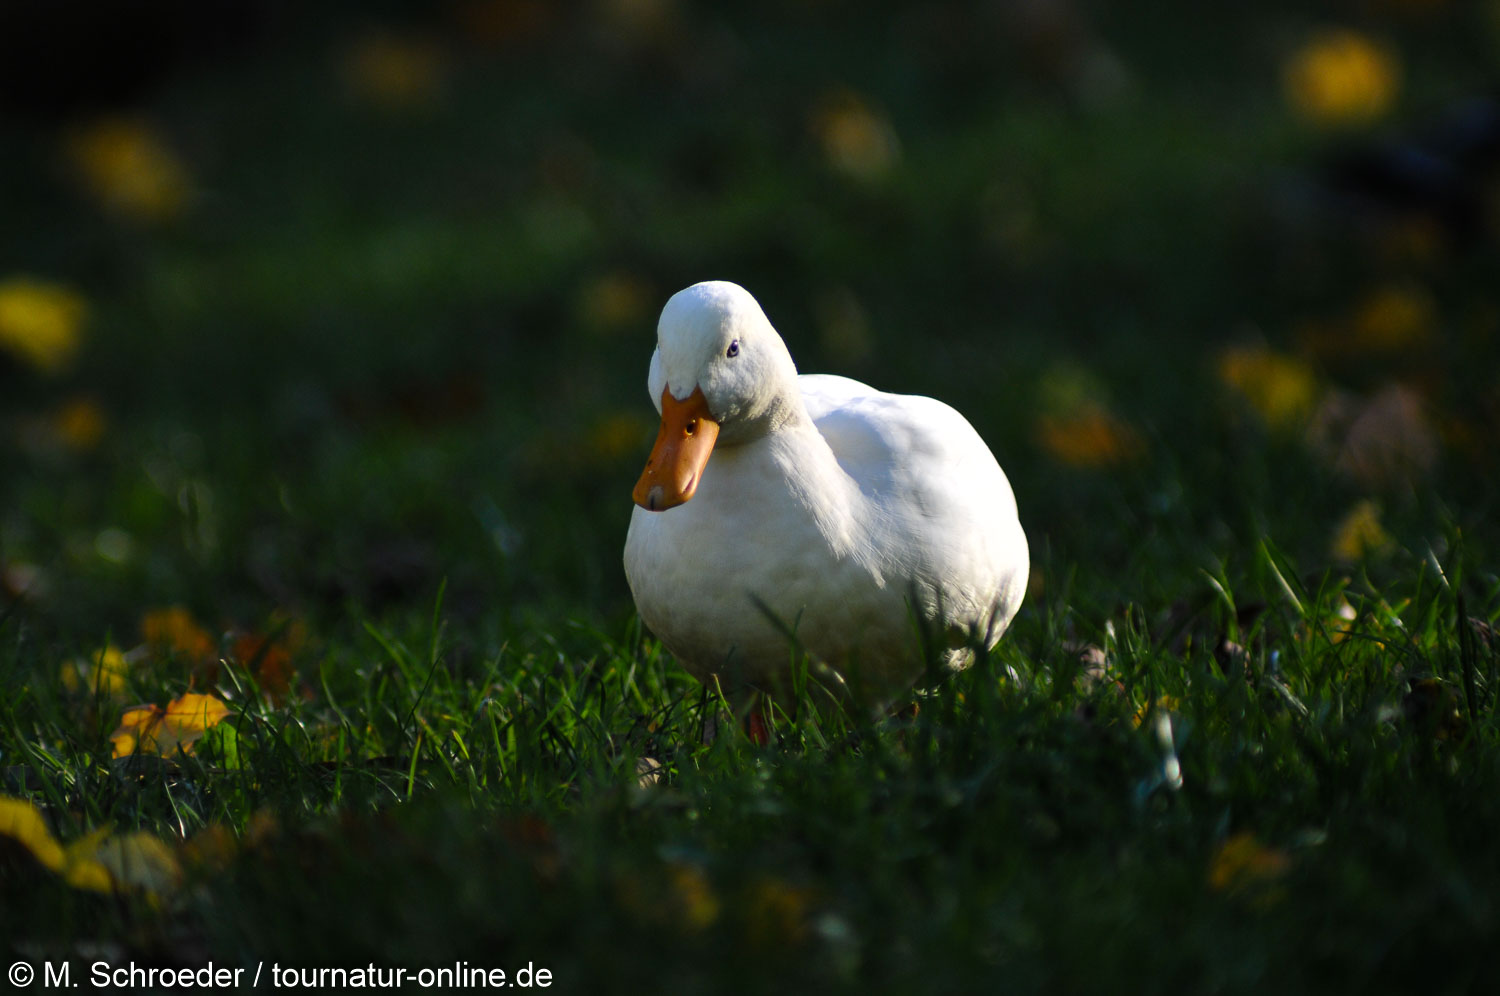 Hausgans - Domestic geese (Anser anser domesticus)